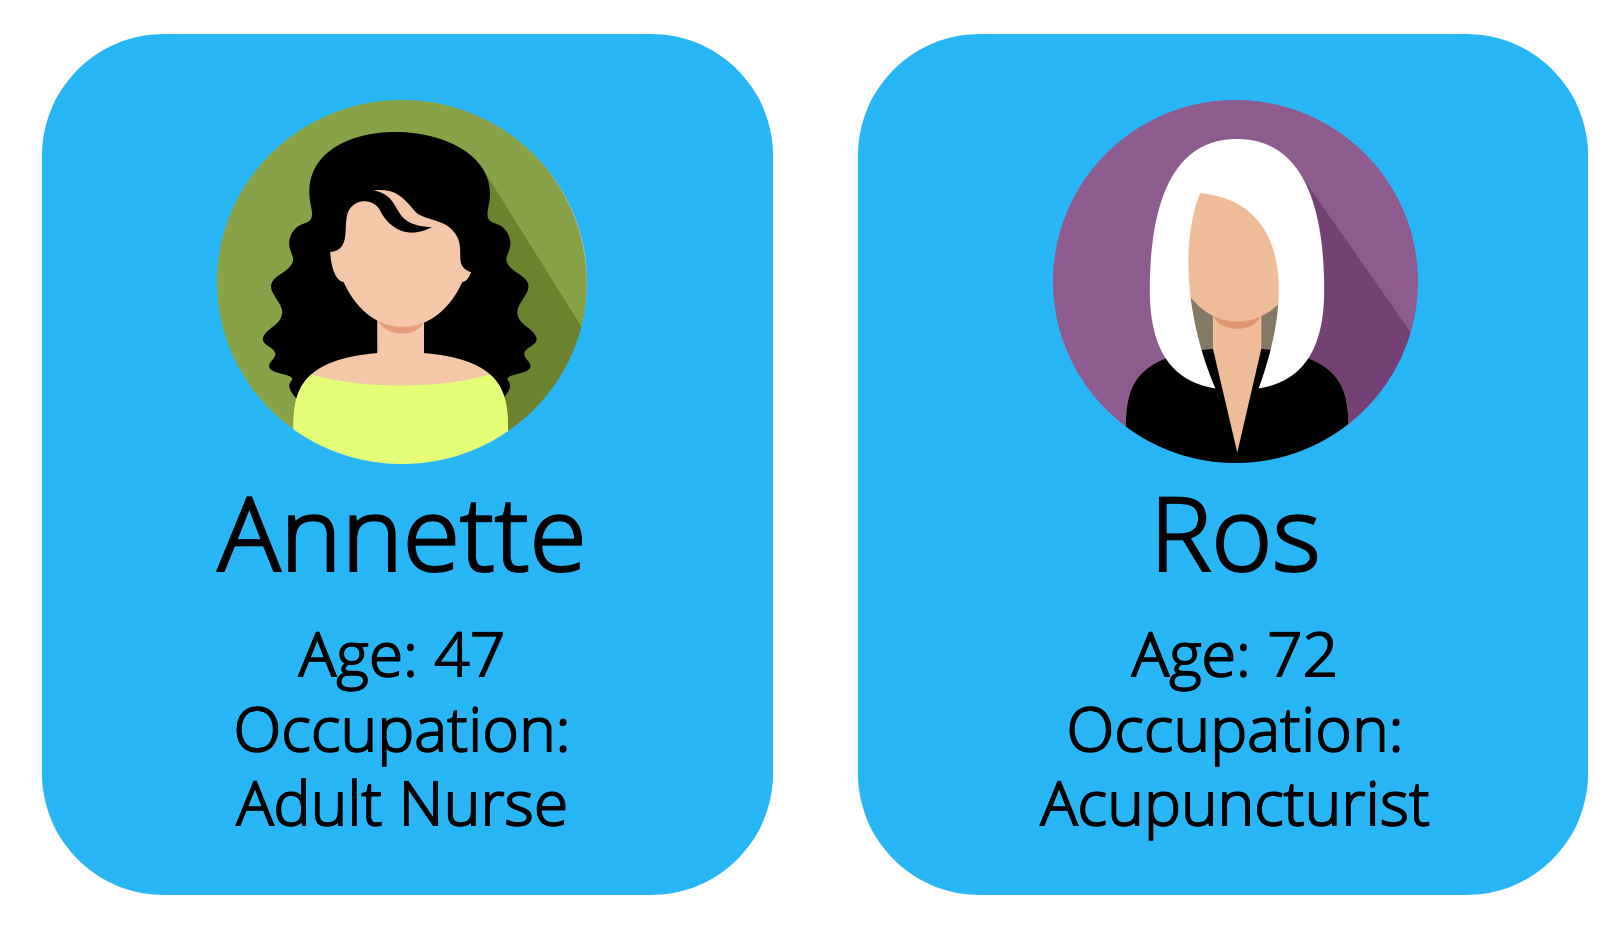 Profile cards for three different women, showing name, age and occupation.